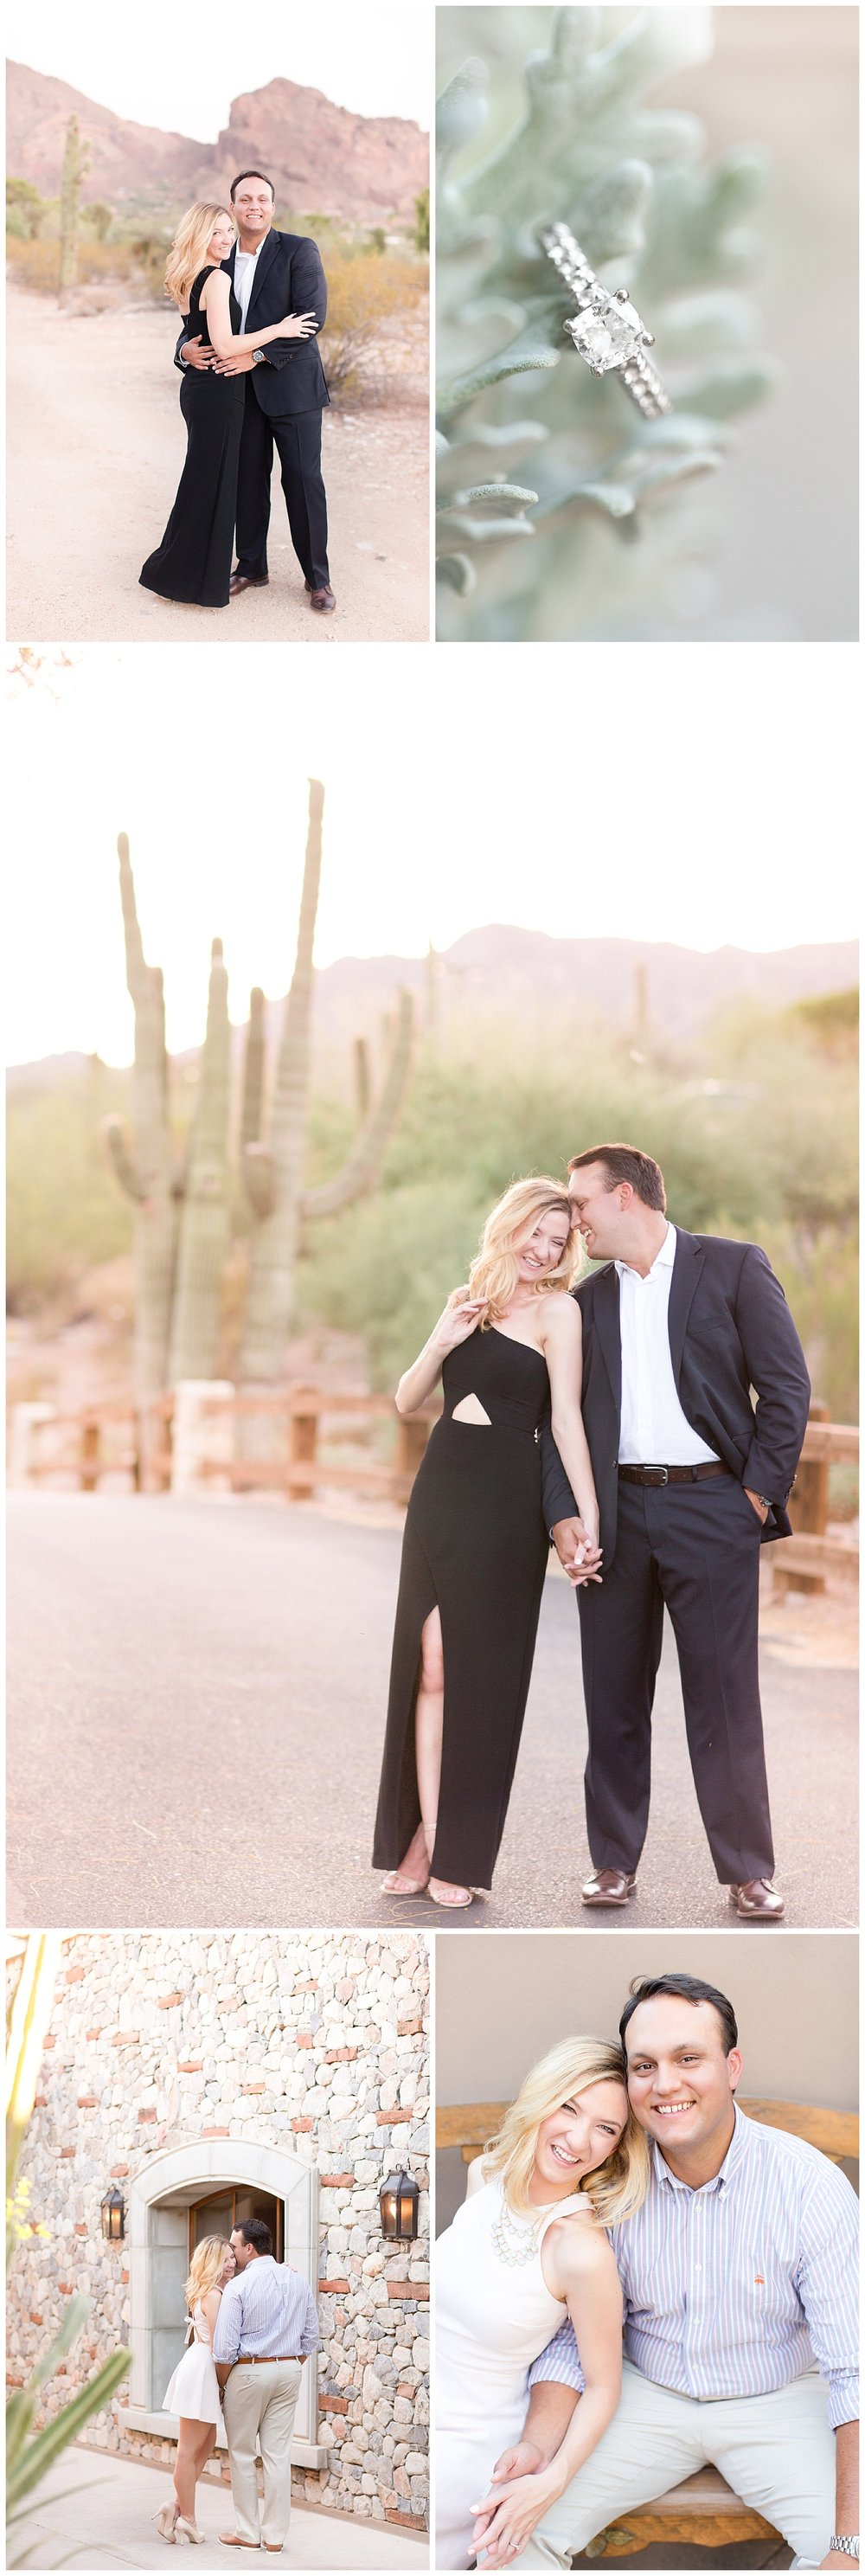 paradise-valley-country-club-engagement-photos.jpg